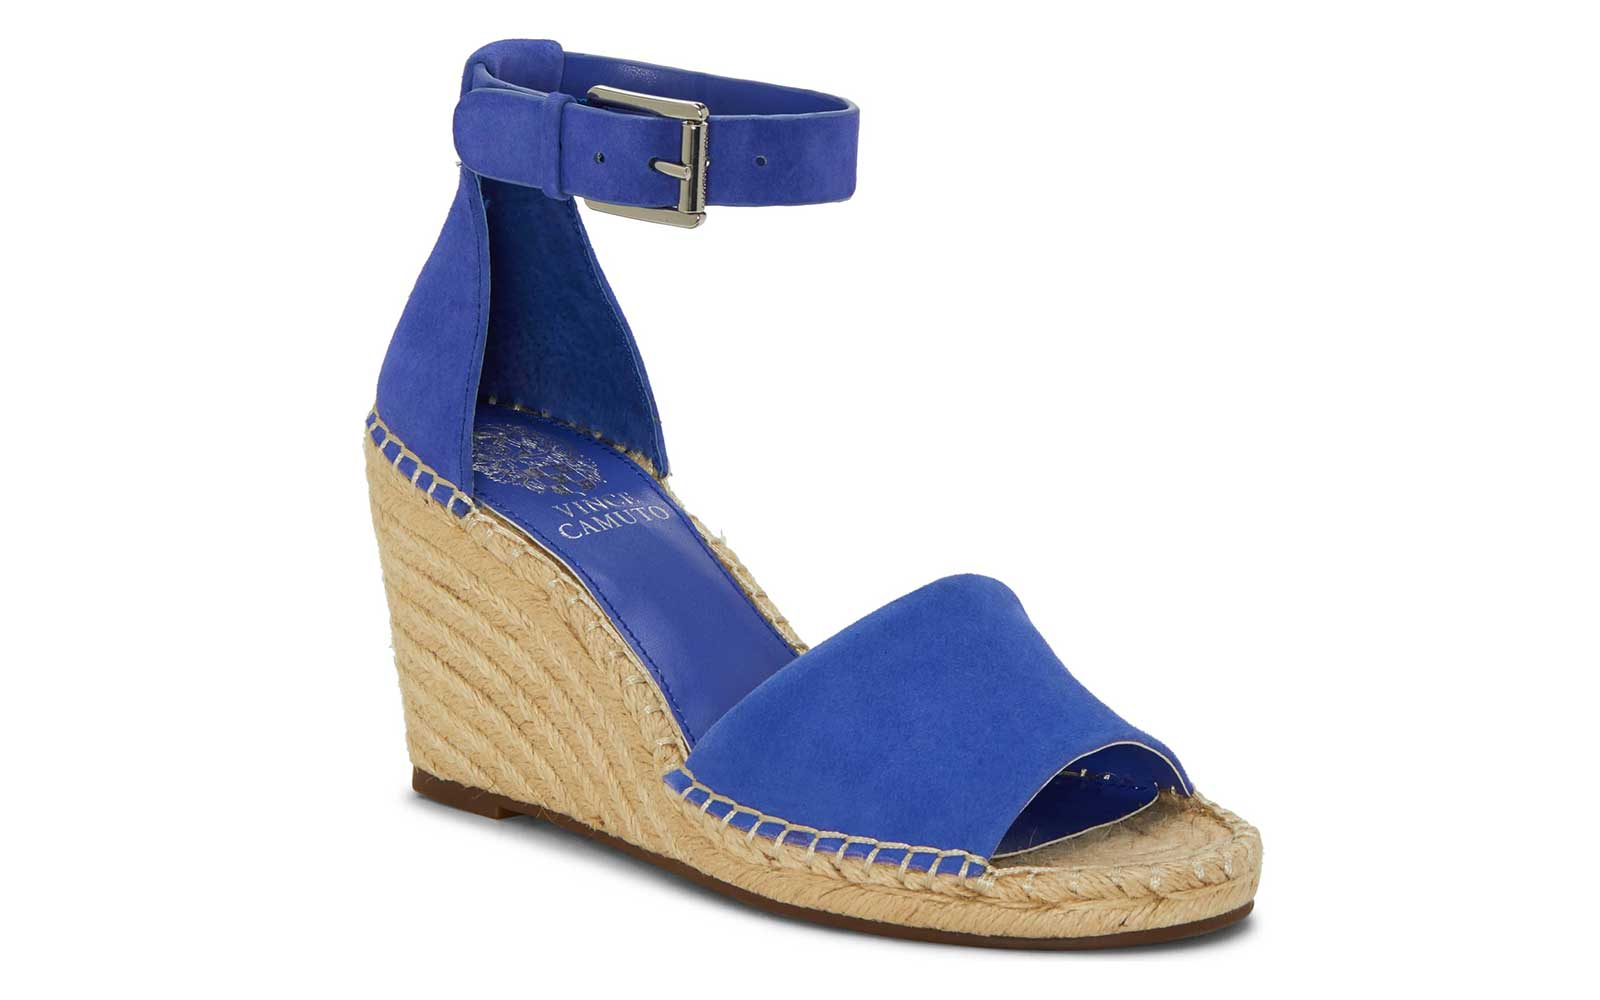 5434fefead The Most Comfortable Wedges for Walking | Travel + Leisure